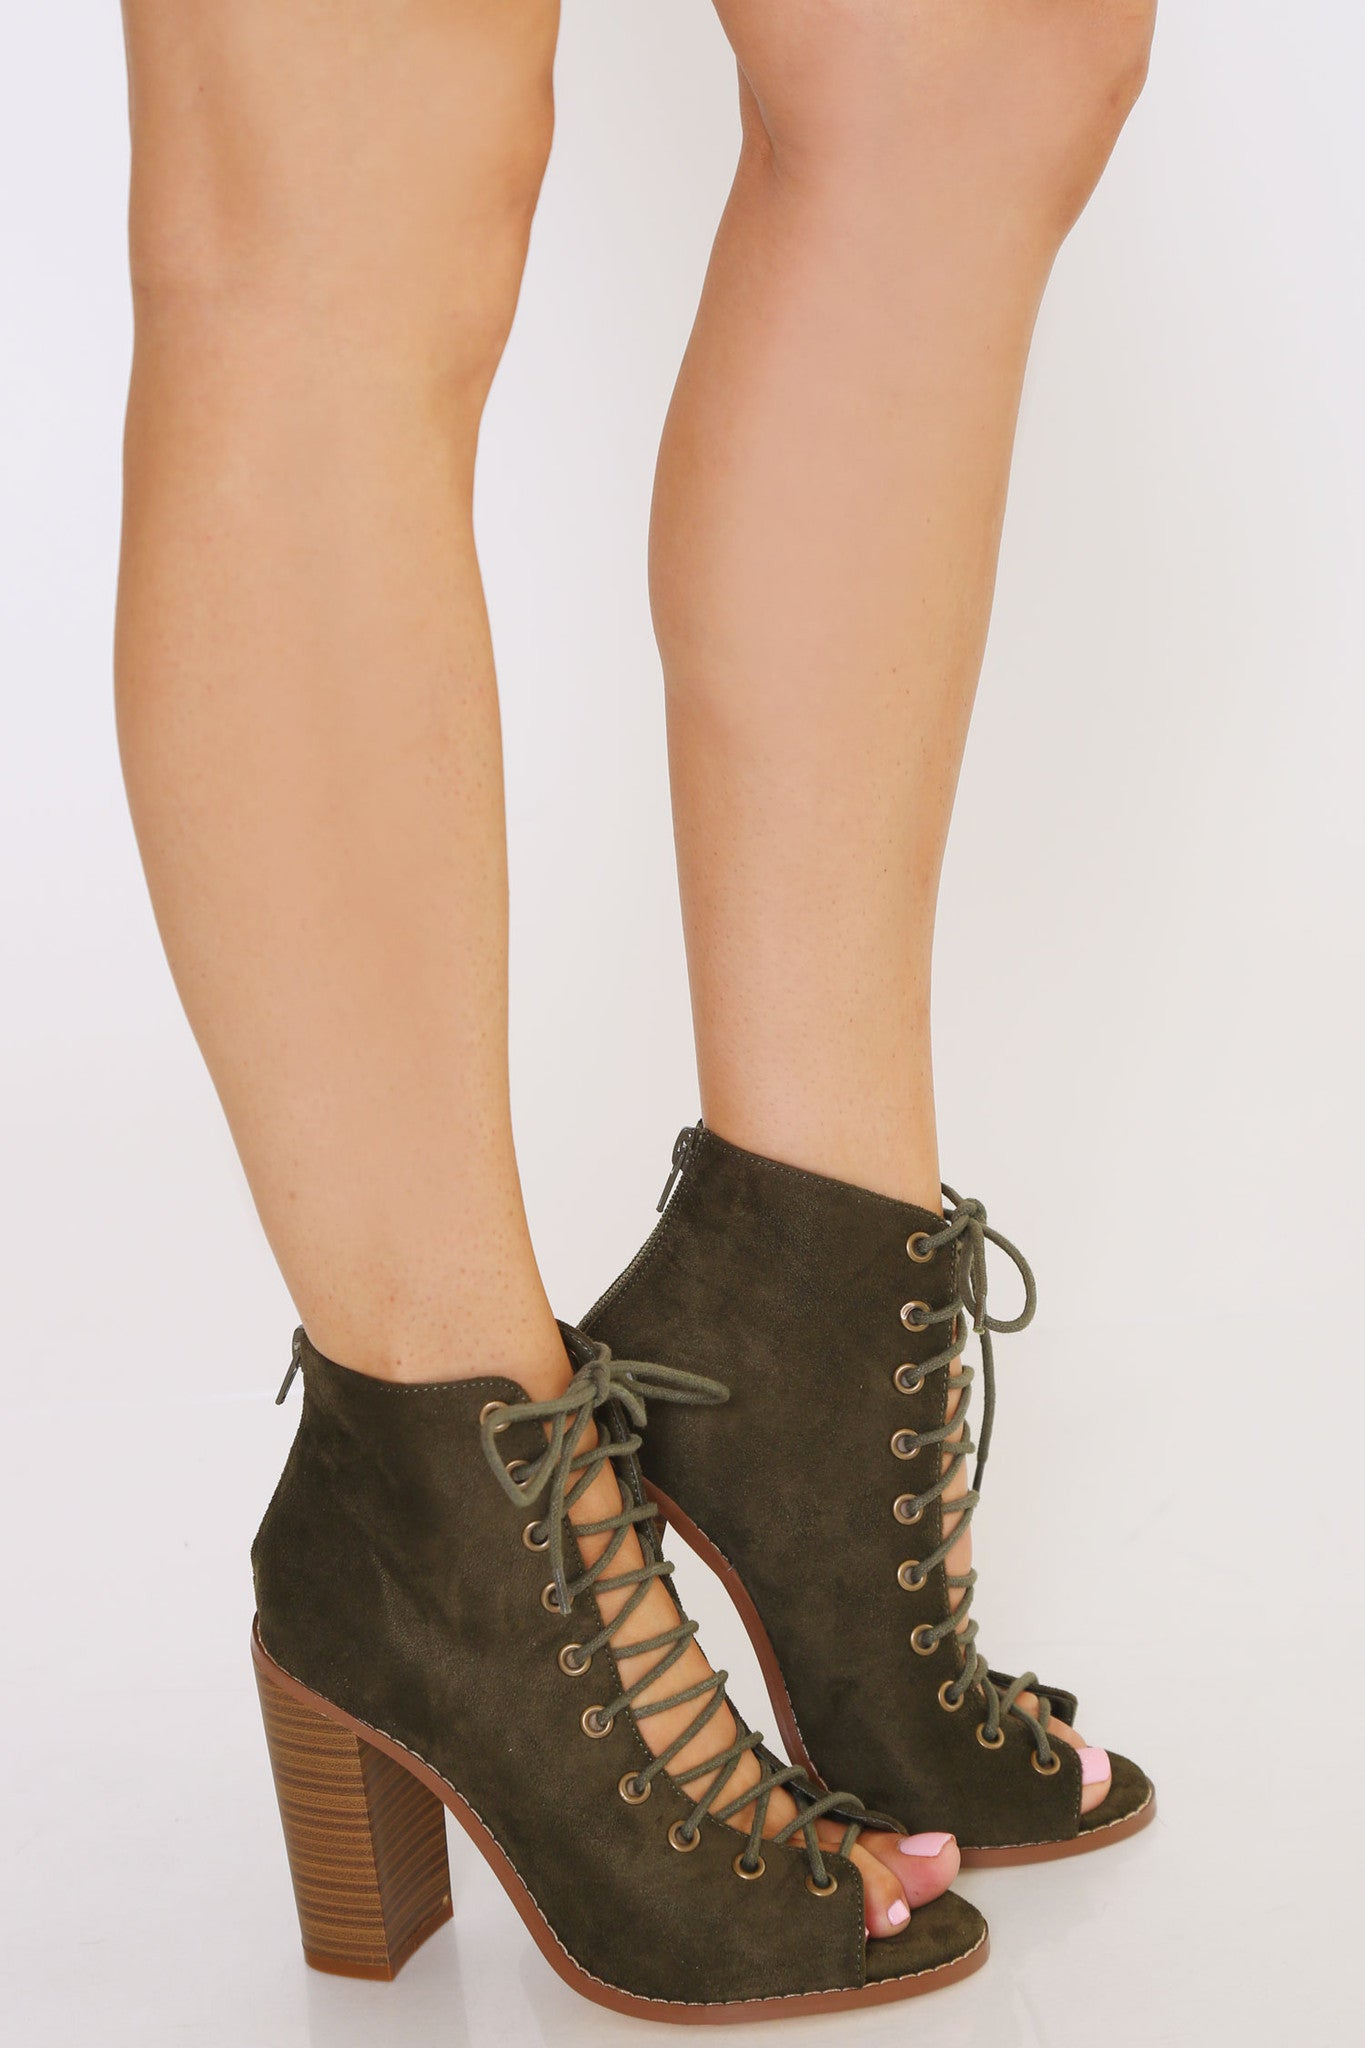 SHEELA LACE UP BOOTIES - Glam Envy - 1